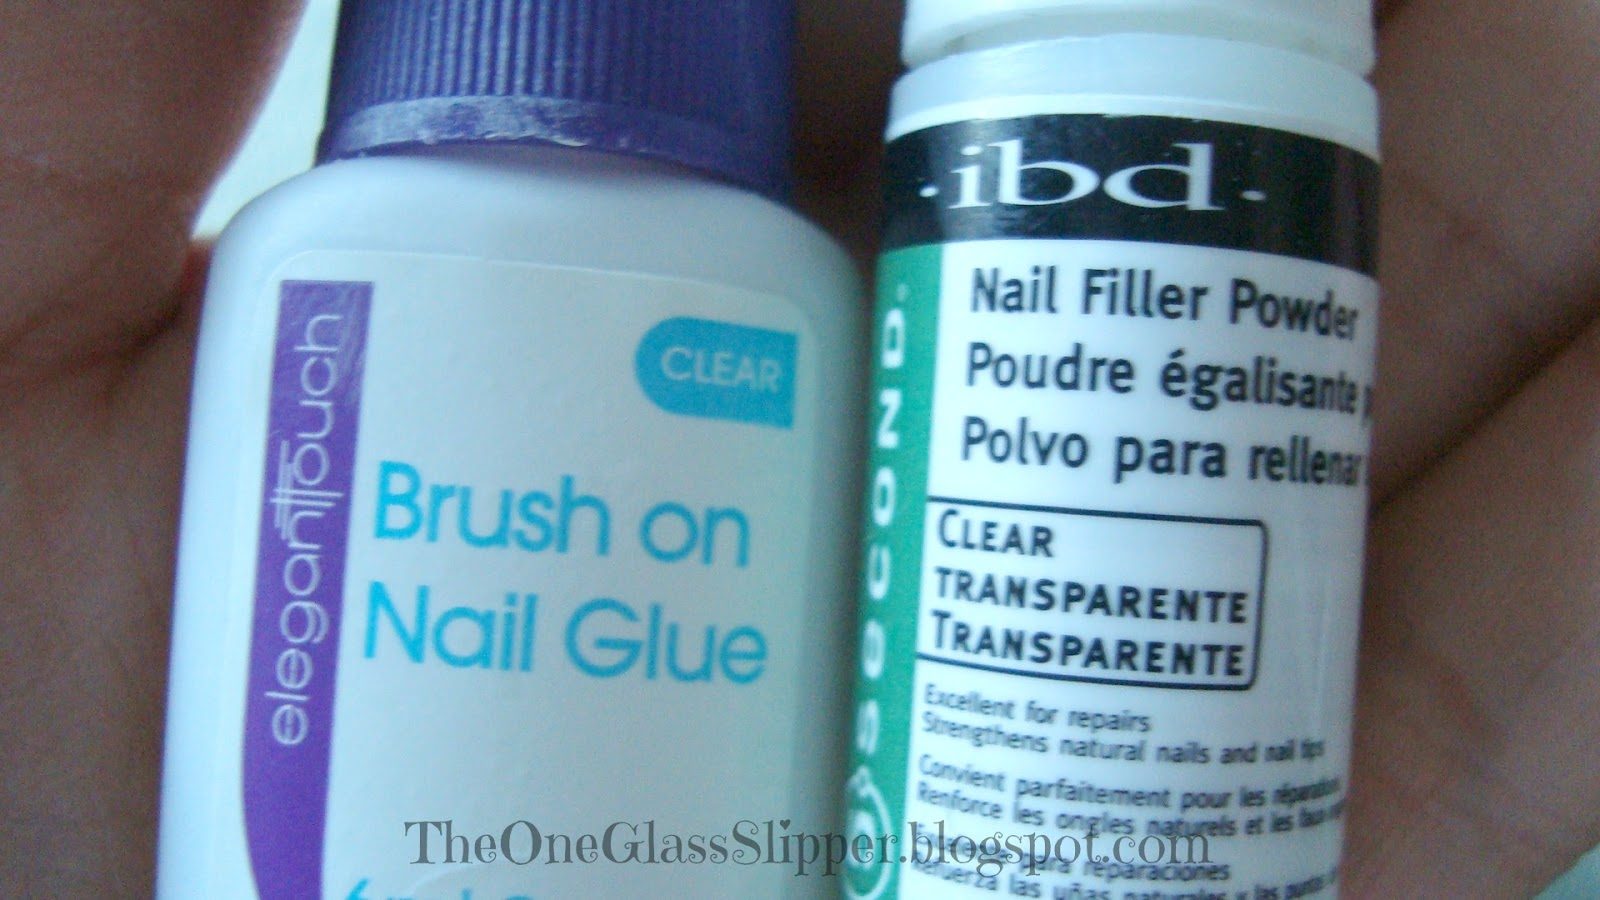 One Glass Slipper: DIY-How To Fix A Broken Nail!